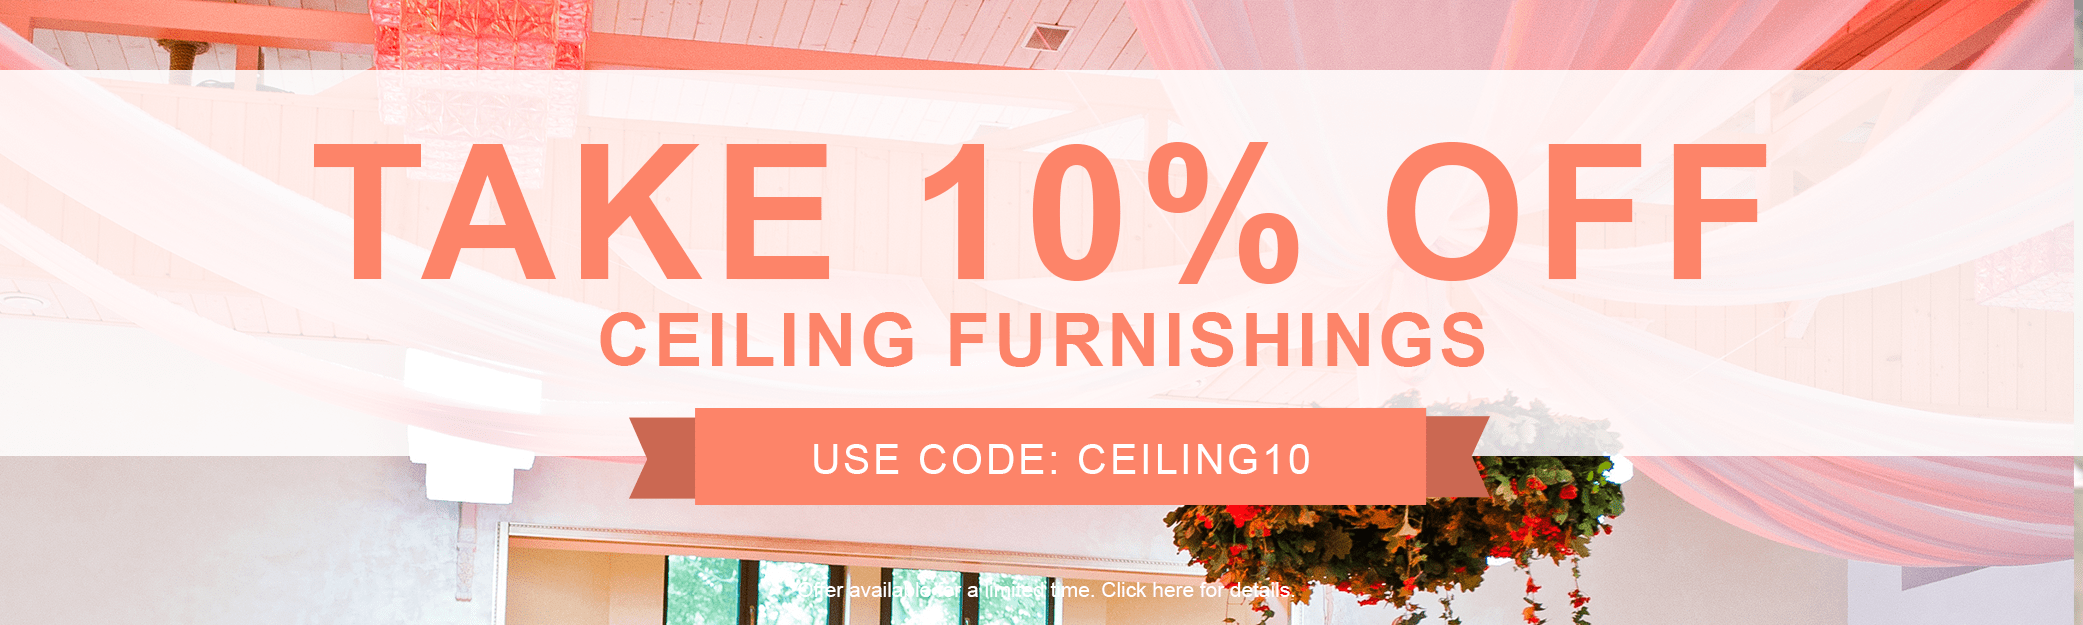 10% off Ceiling Furnishings